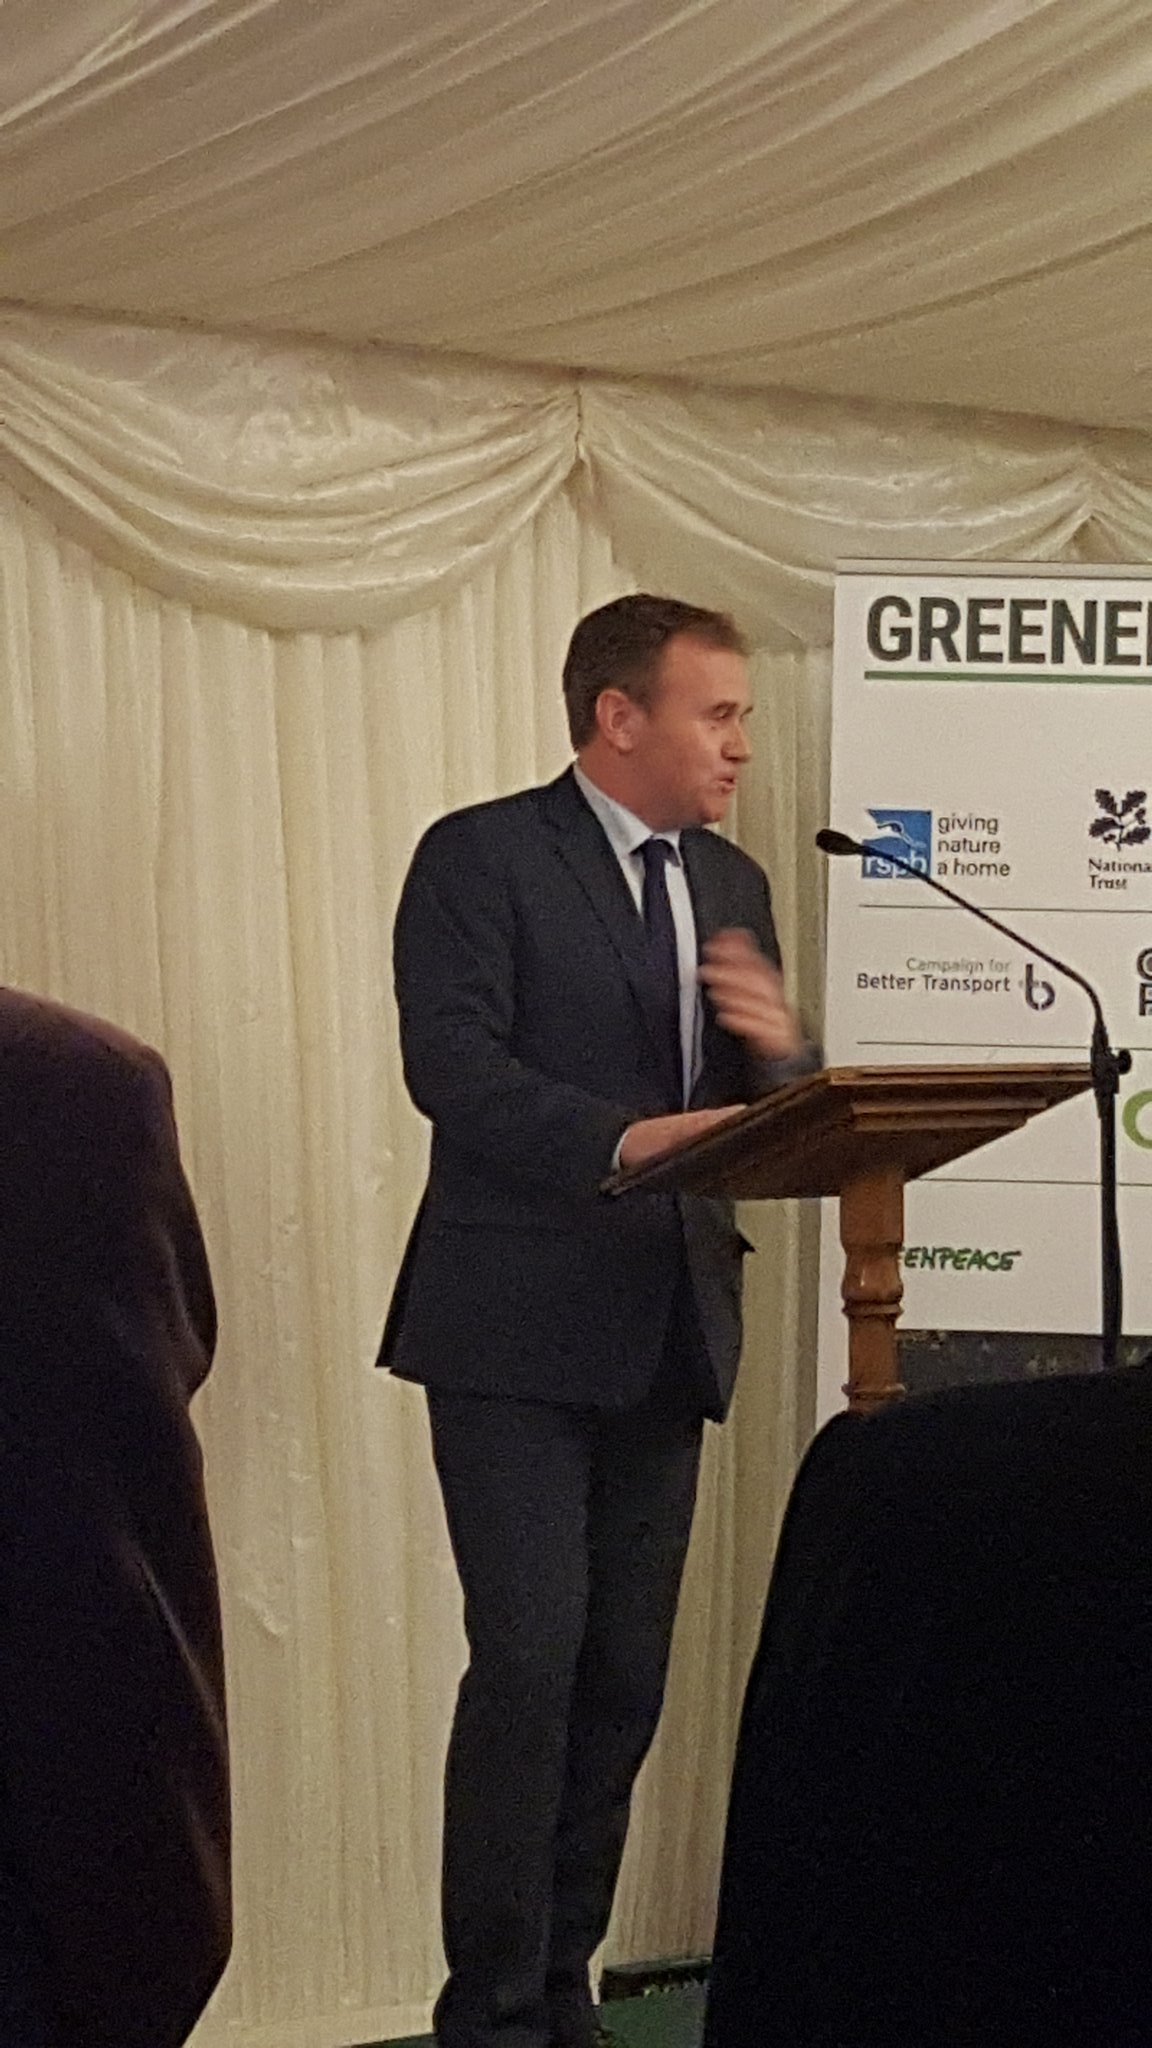 """Taking control back means taking responsibility"" Fisheries minister George Eustice talks at #greenerUK https://t.co/zwTOqOmx3Z"